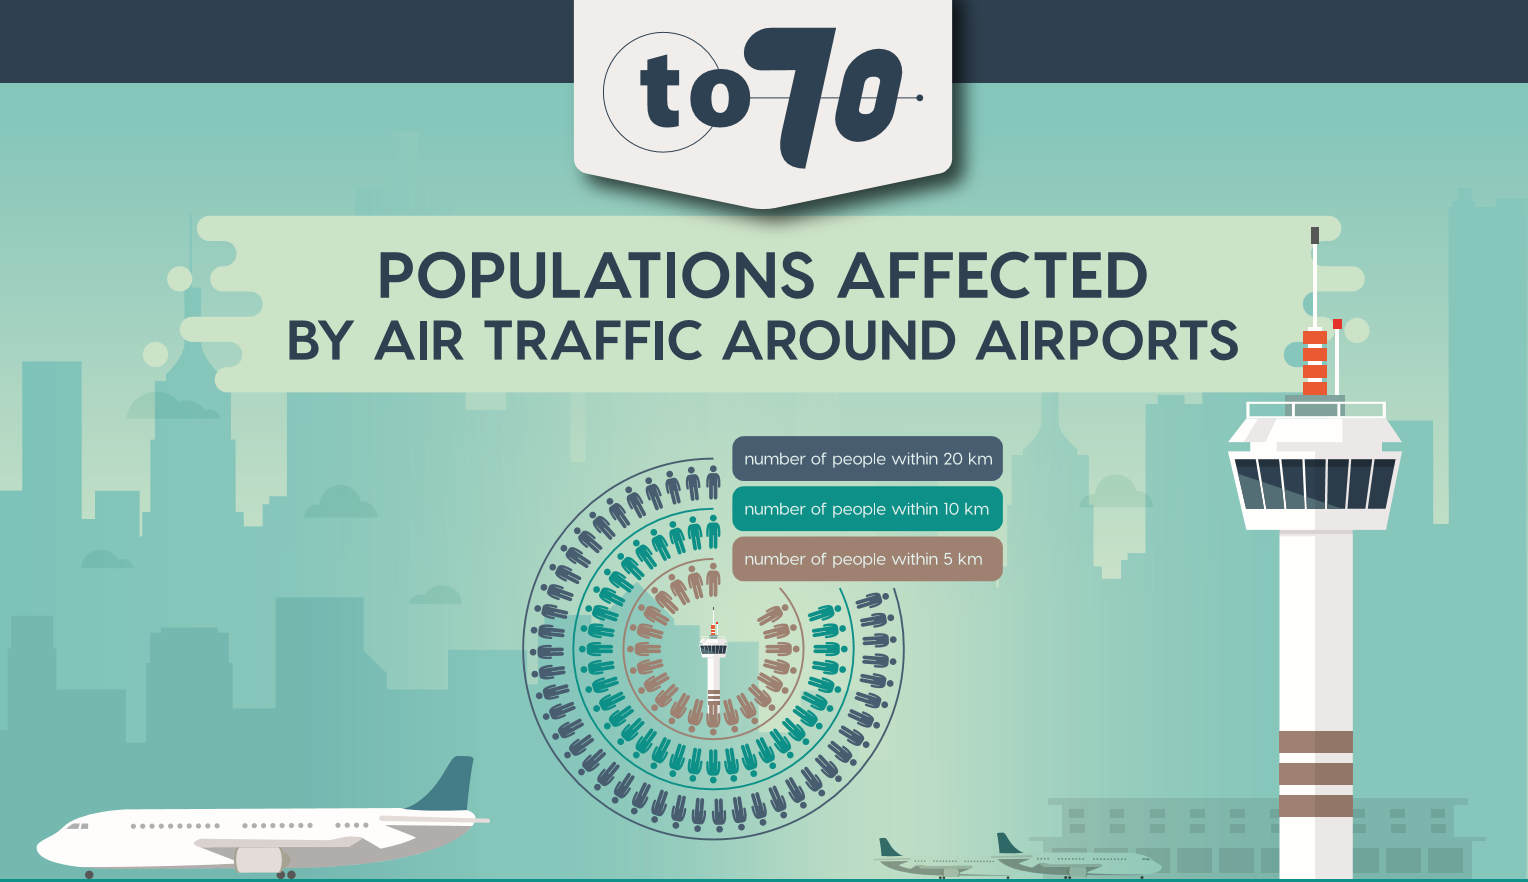 Aircraft noise exposure around European airports - To70